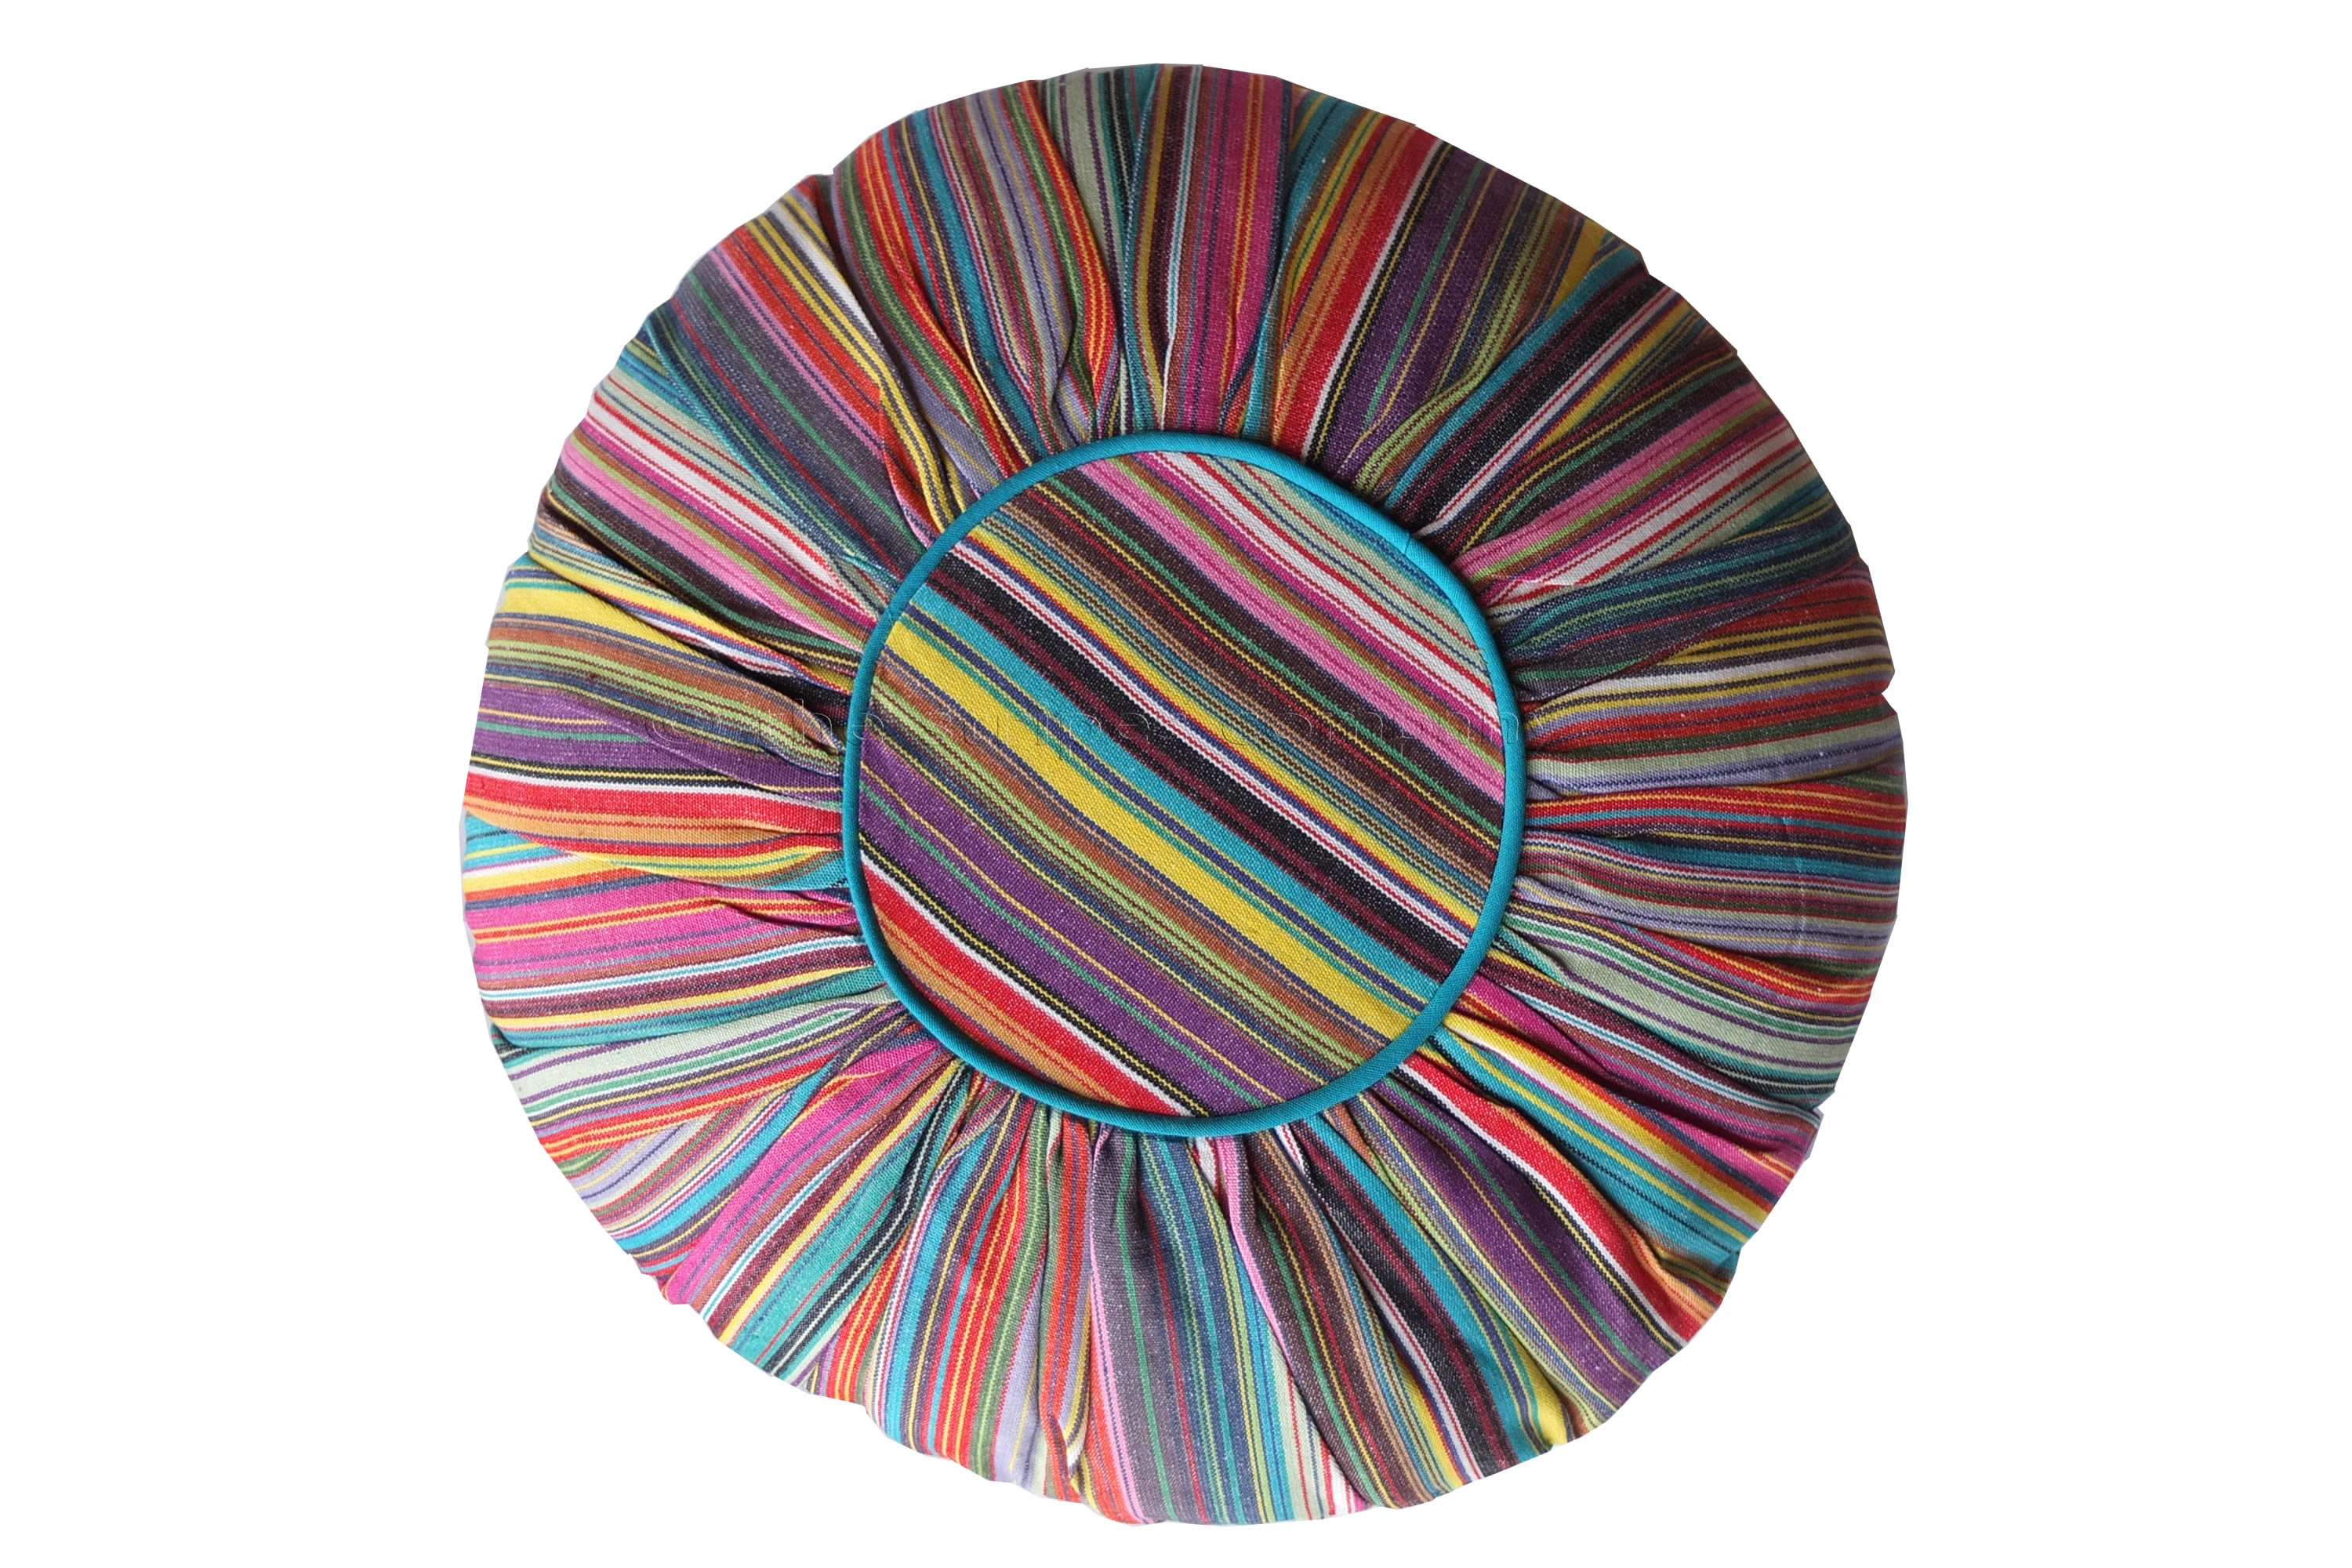 Roiund Gathered Cushions | Multi Stripe Circular Cushion with Turquoise Piping